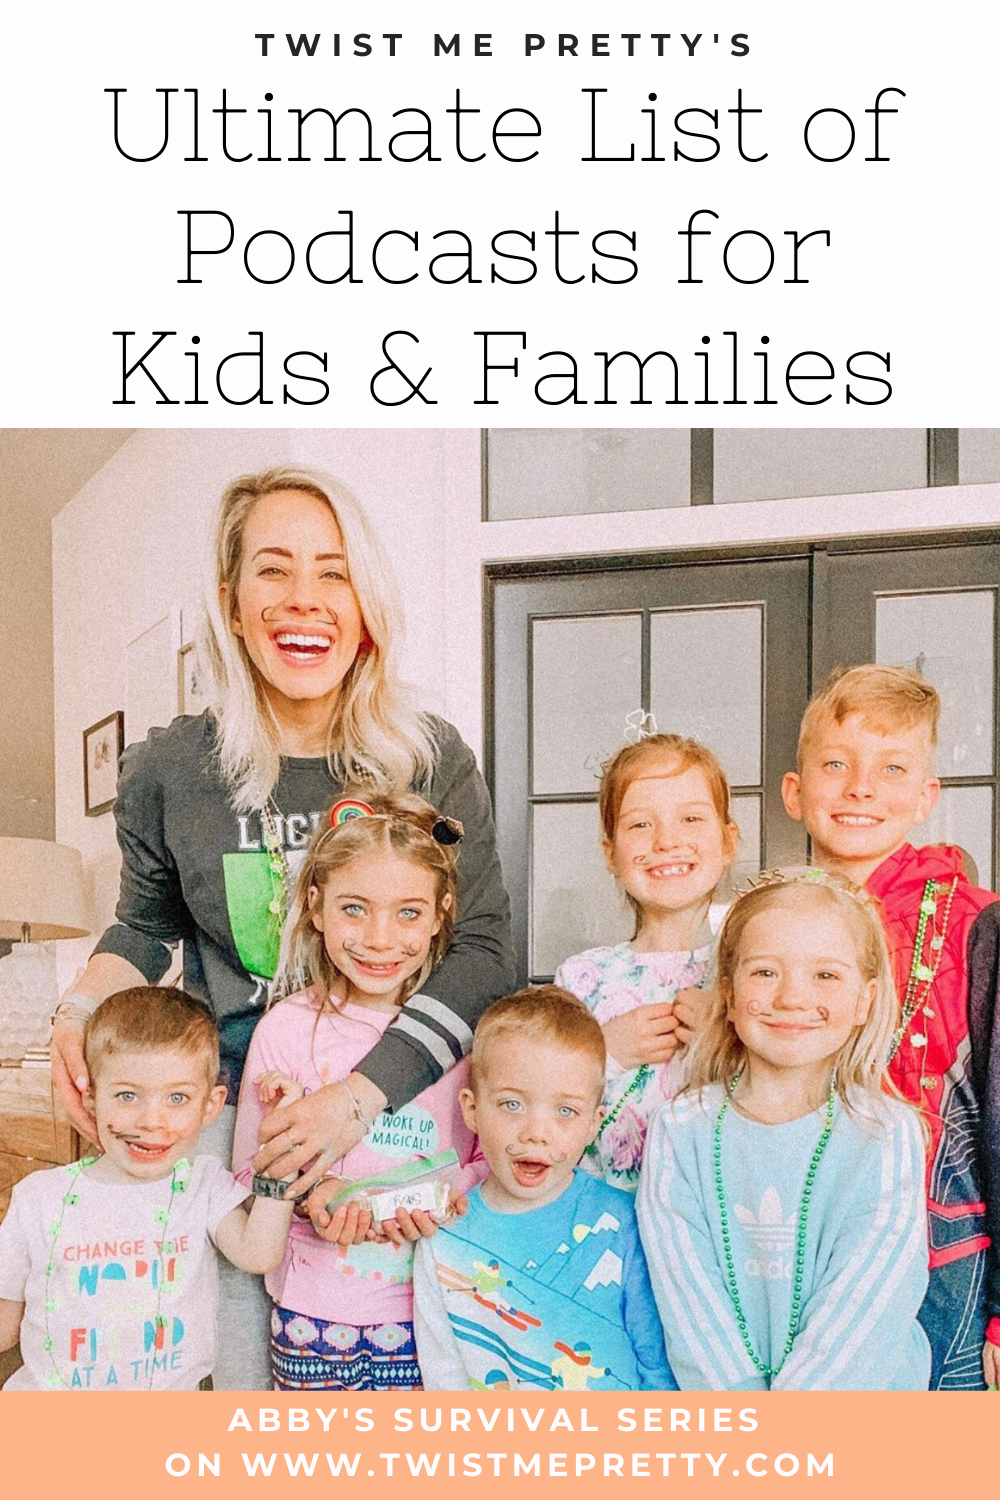 Twist Me Pretty's Ultimate List of Podcasts for Kids and Families - Abby's Survival Series. www.TwistMePretty.com